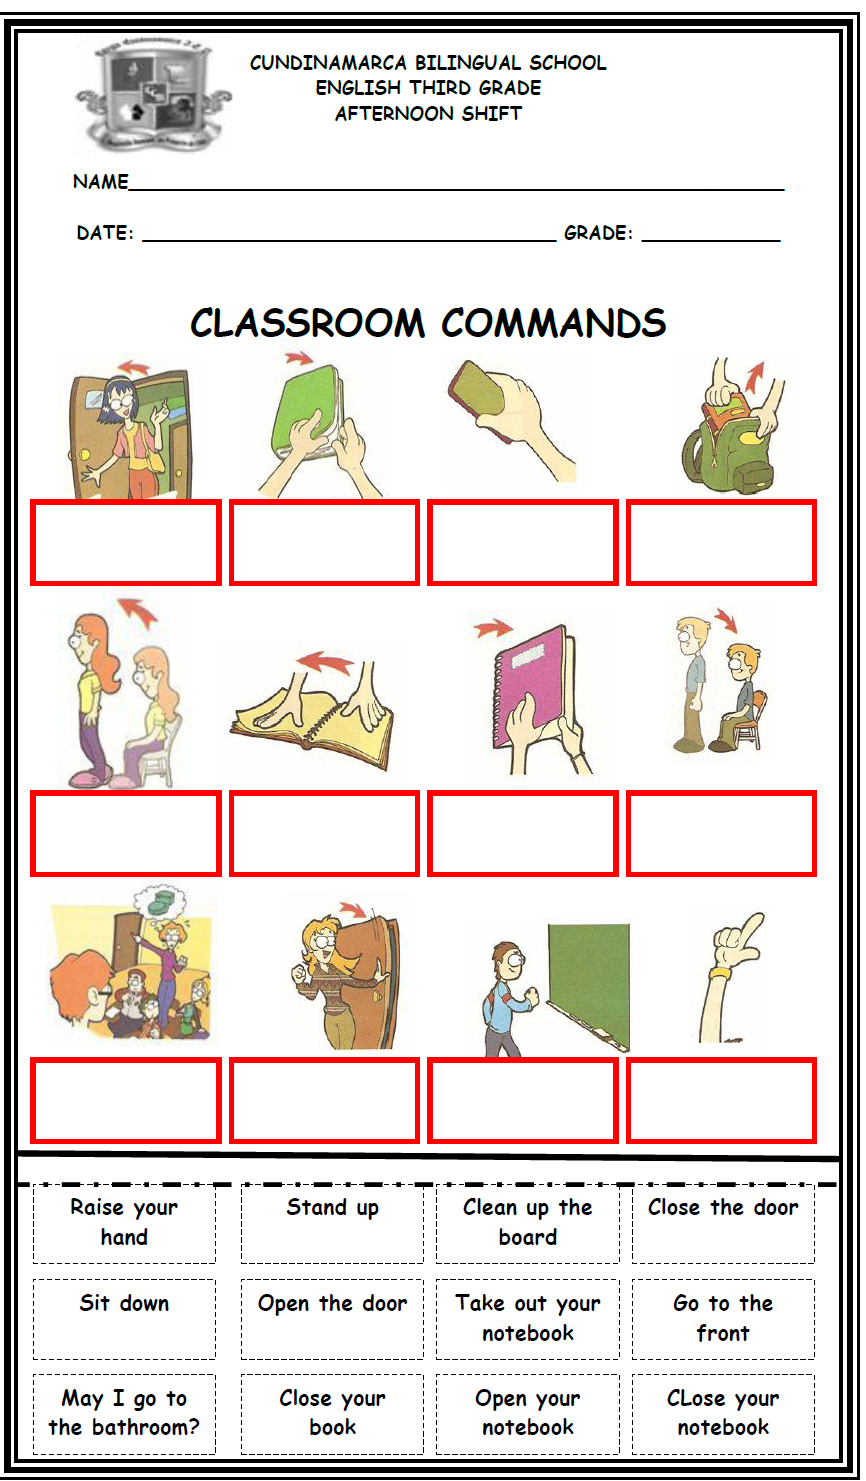 English Fourth Graders U00b4 Zone  First Worksheet